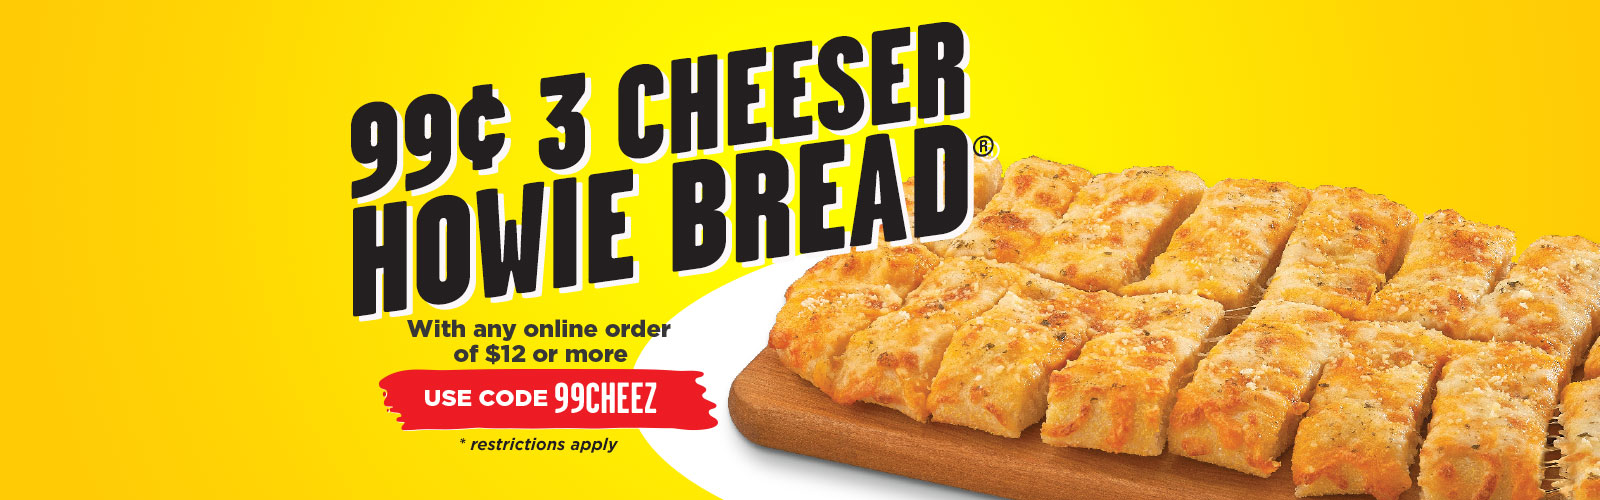 99¢ 3 Cheeser Howie Bread® with the purchase of $12 or more.